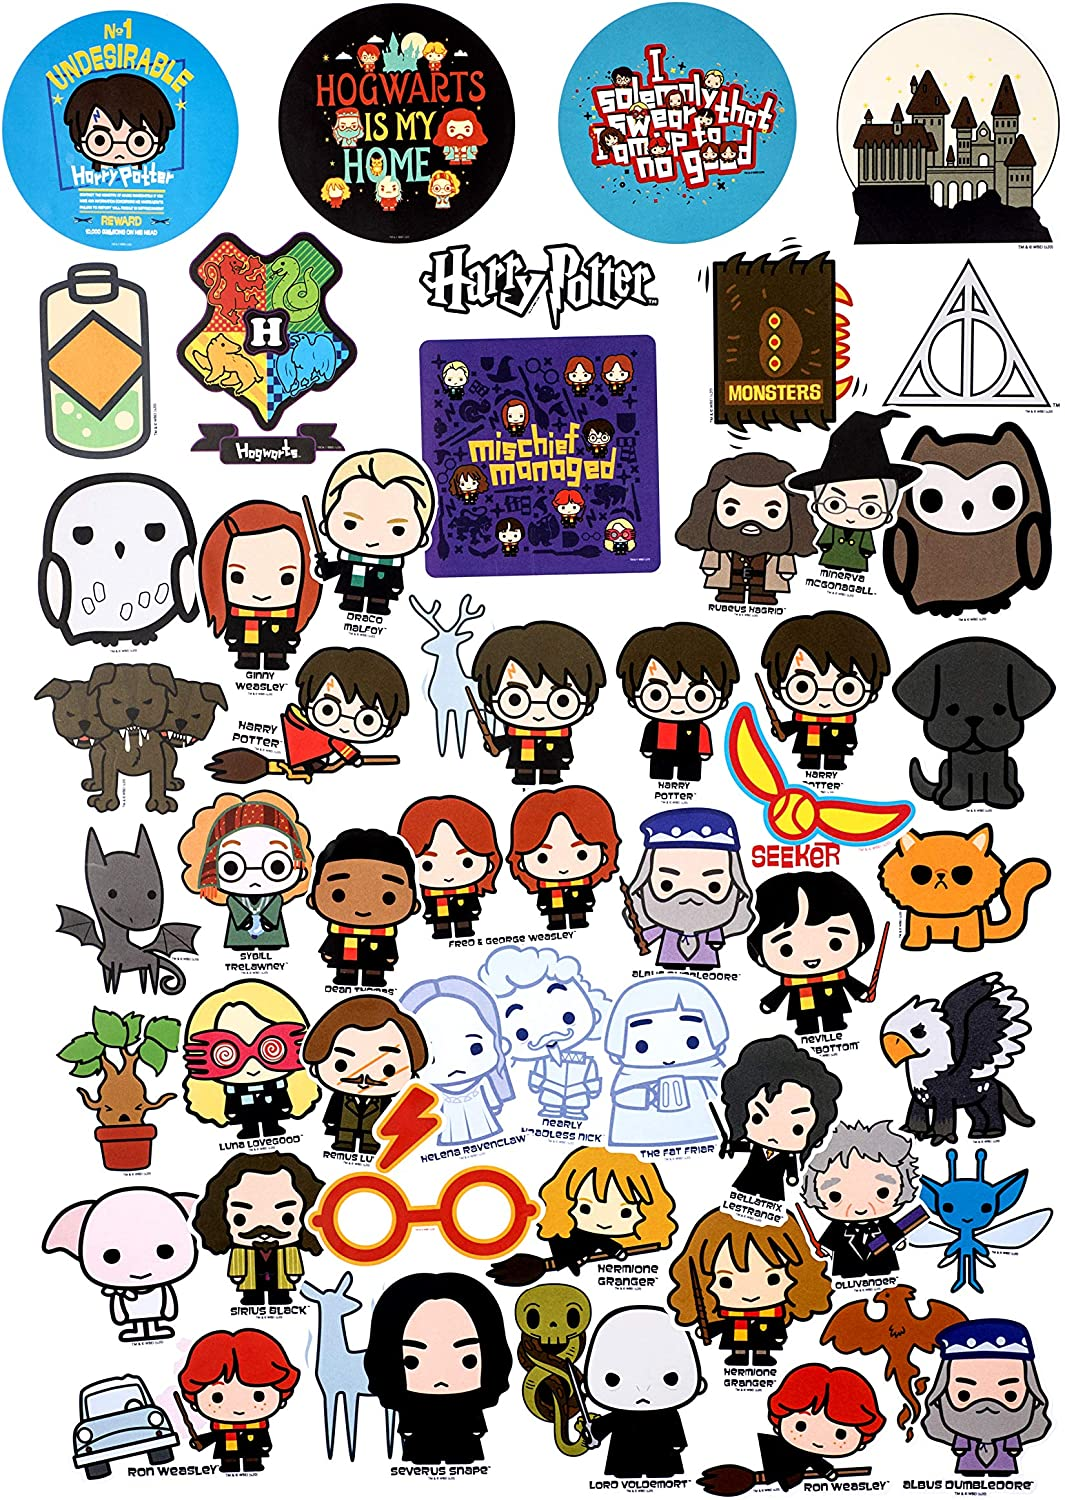 Potterfy All The Things Waterproof and UV Resistant Set of 50 Conquest Journals Harry Potter Chibi Vinyl Stickers Indoor and Outdoor Use Great for All Your Gadgets